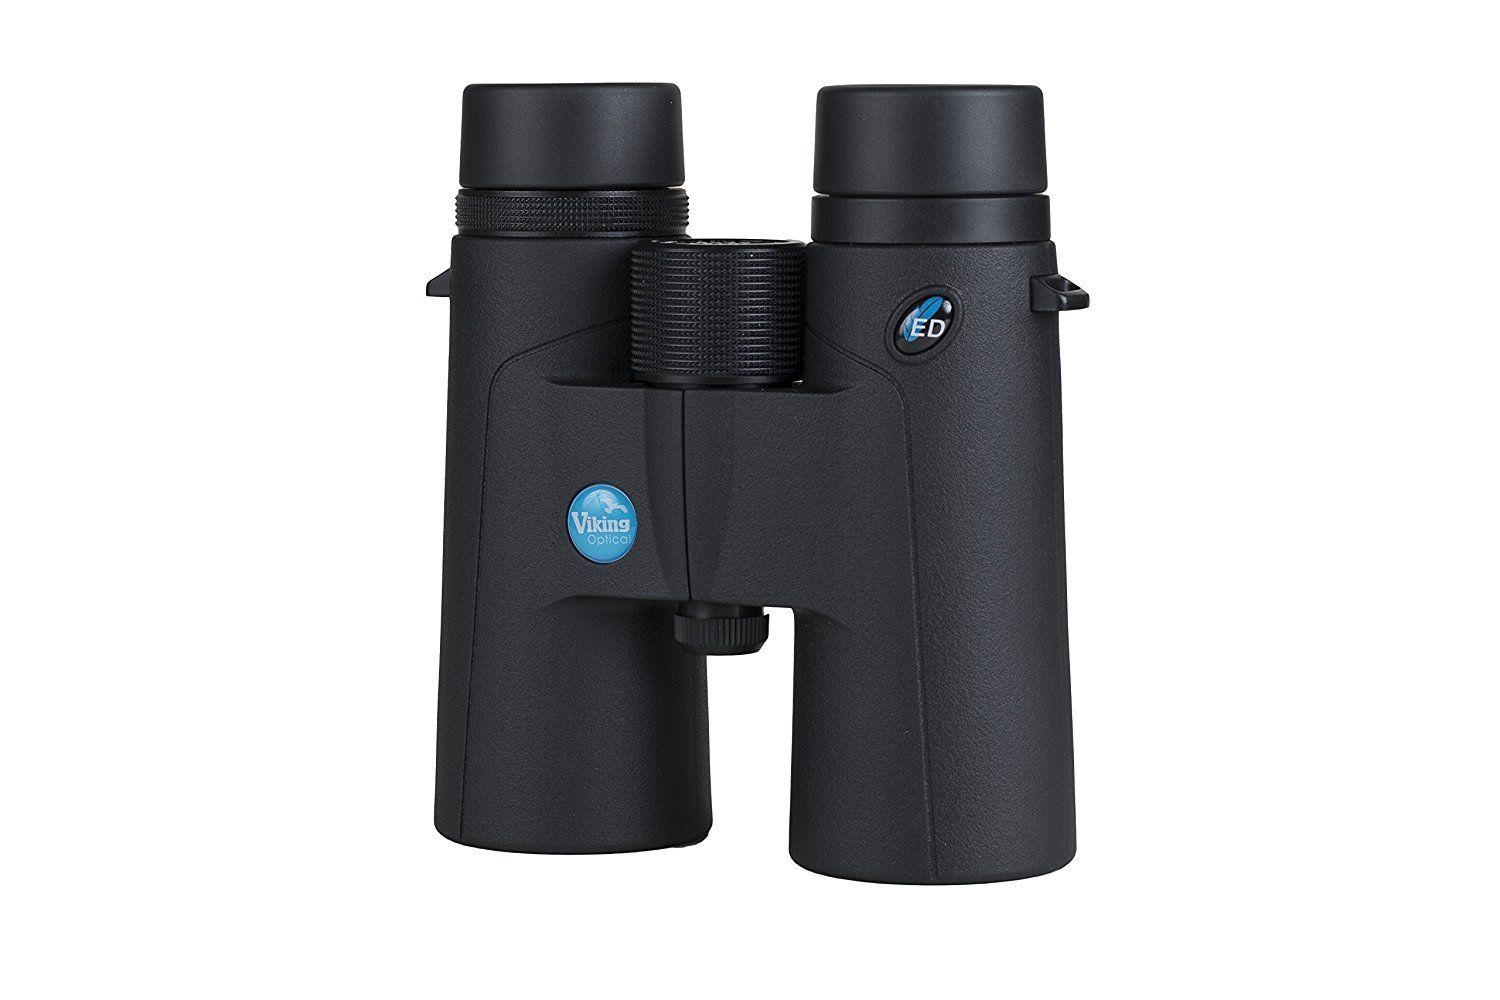 Viking Kestrel 8x42 ED Waterproof Binoculars and Case